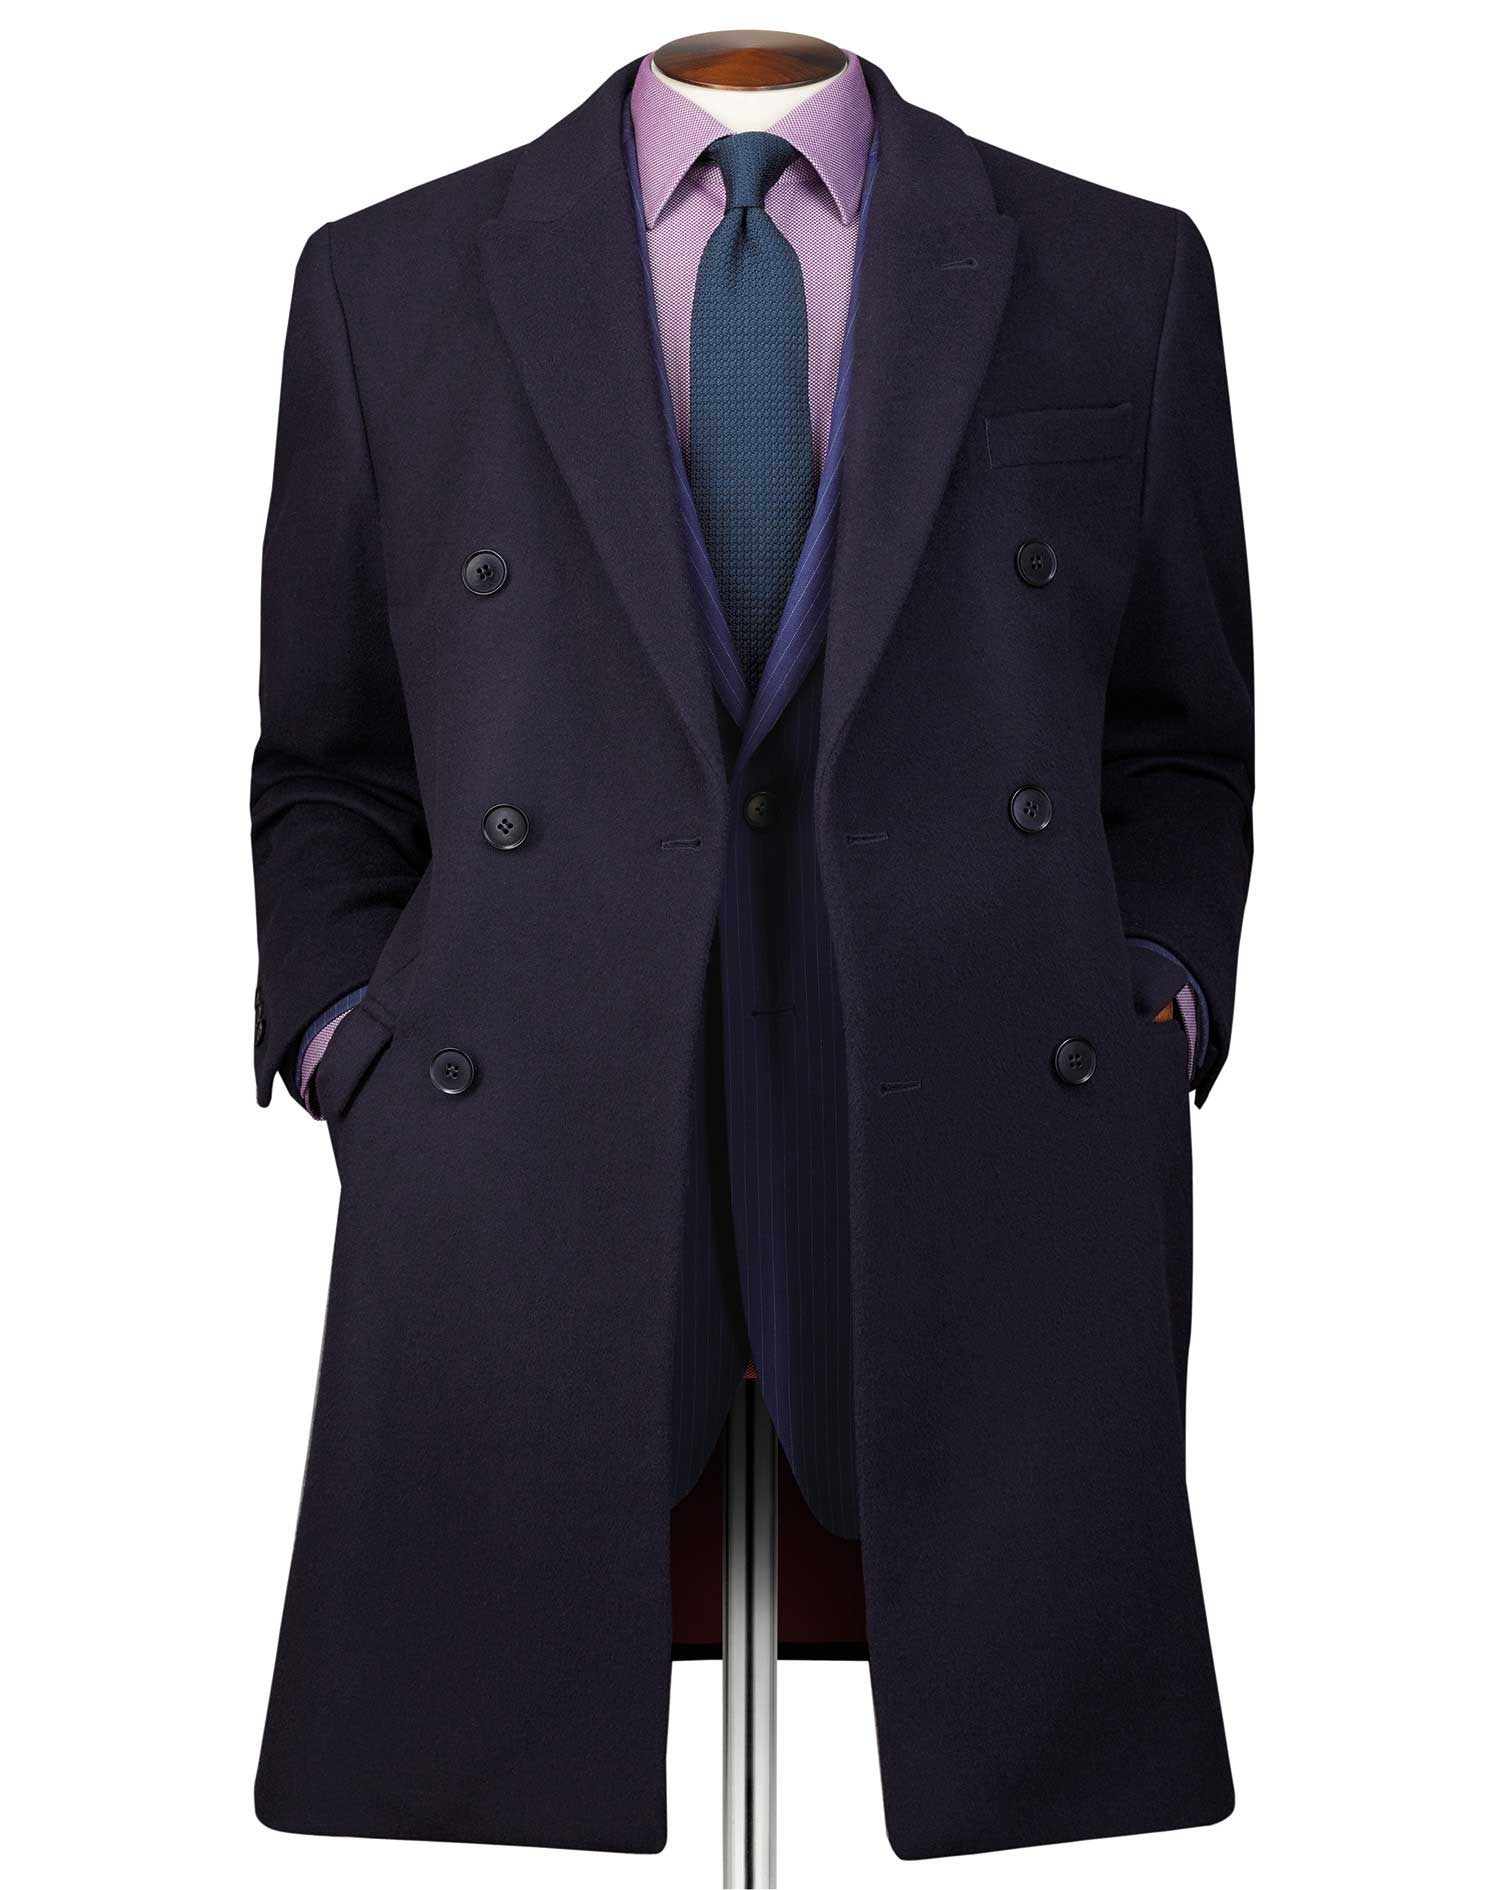 Navy Wool and Cashmere Double Breasted Epsom Overcoat Size 46 Regular by Charles Tyrwhitt